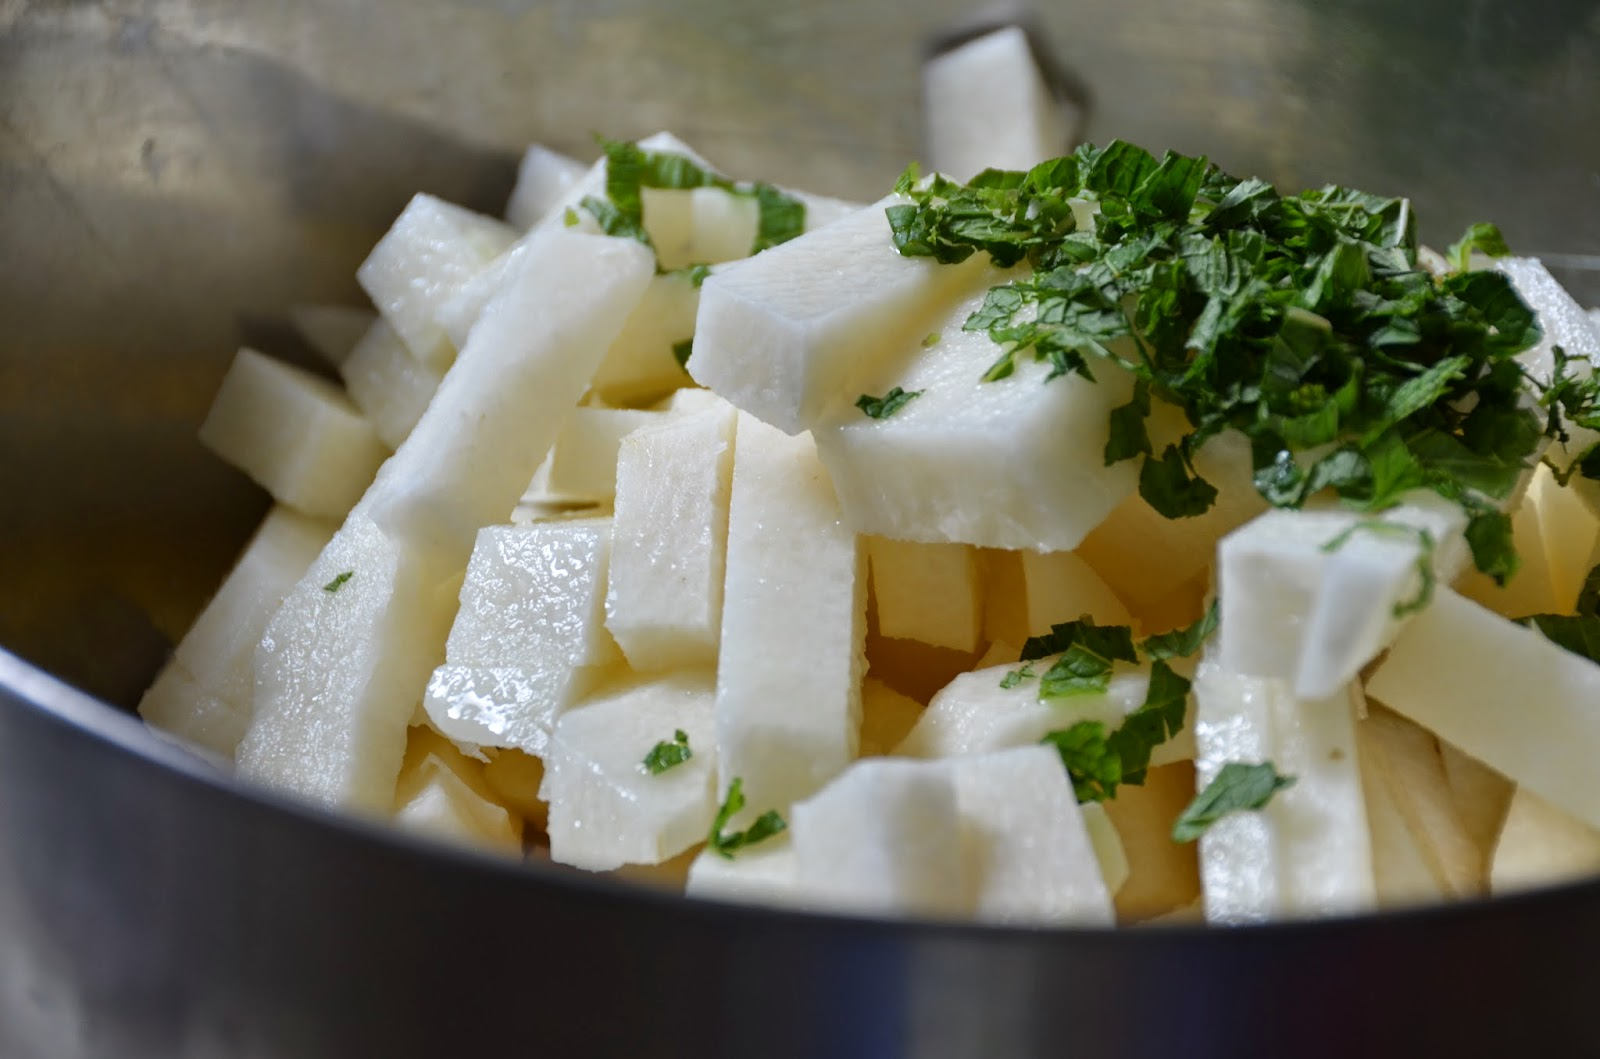 Minted Jicama Sticks